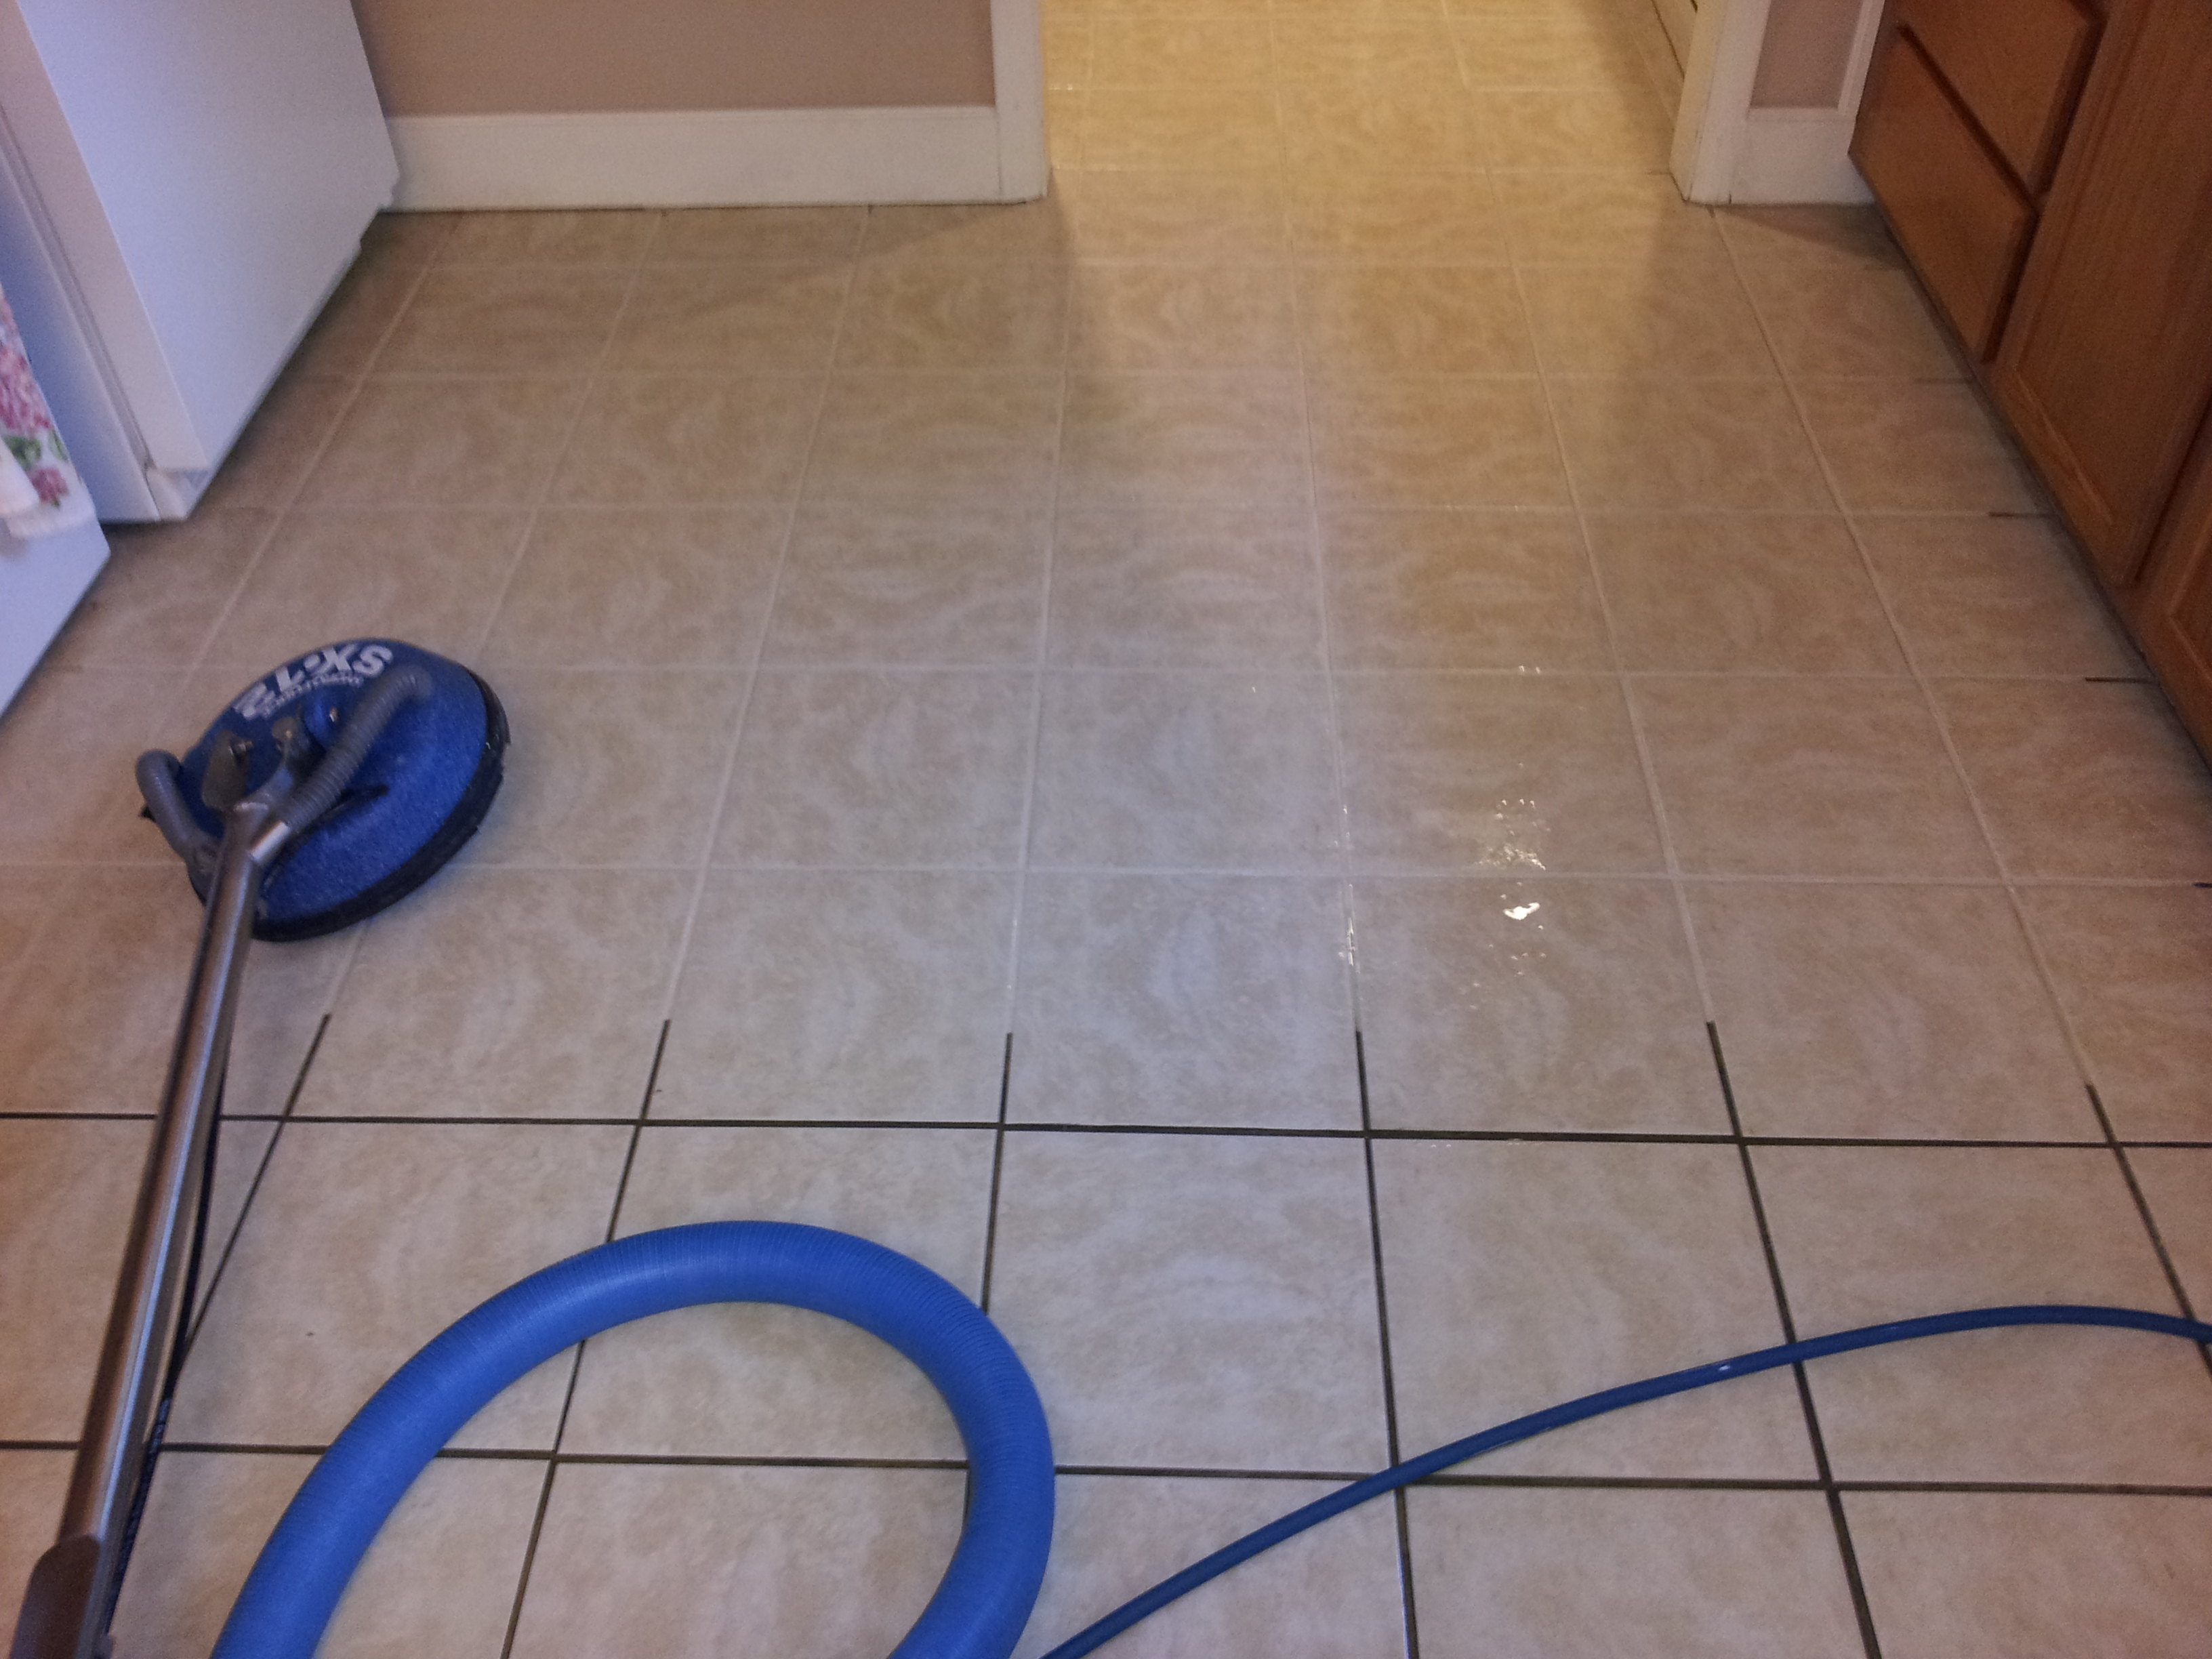 How To Clean Bathroom Tile Grout The Ultimate Tile Grout Cleaning Hacks You Can Use At Home